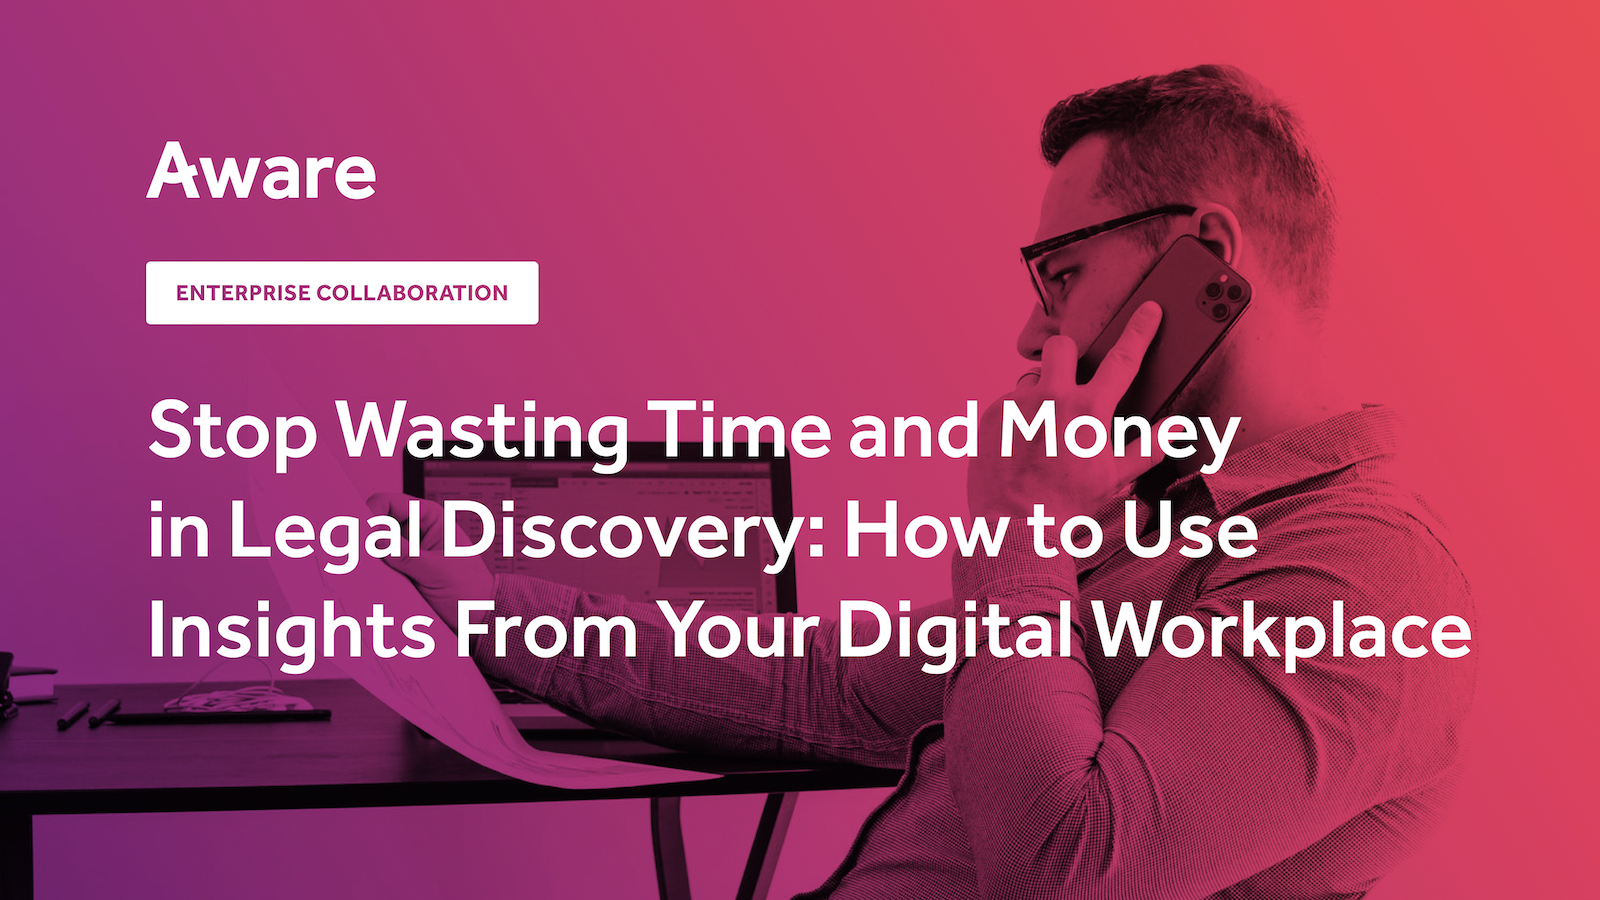 Stop Wasting Time and Money in Legal Discovery: Start With Insights From Your Digital Workplace